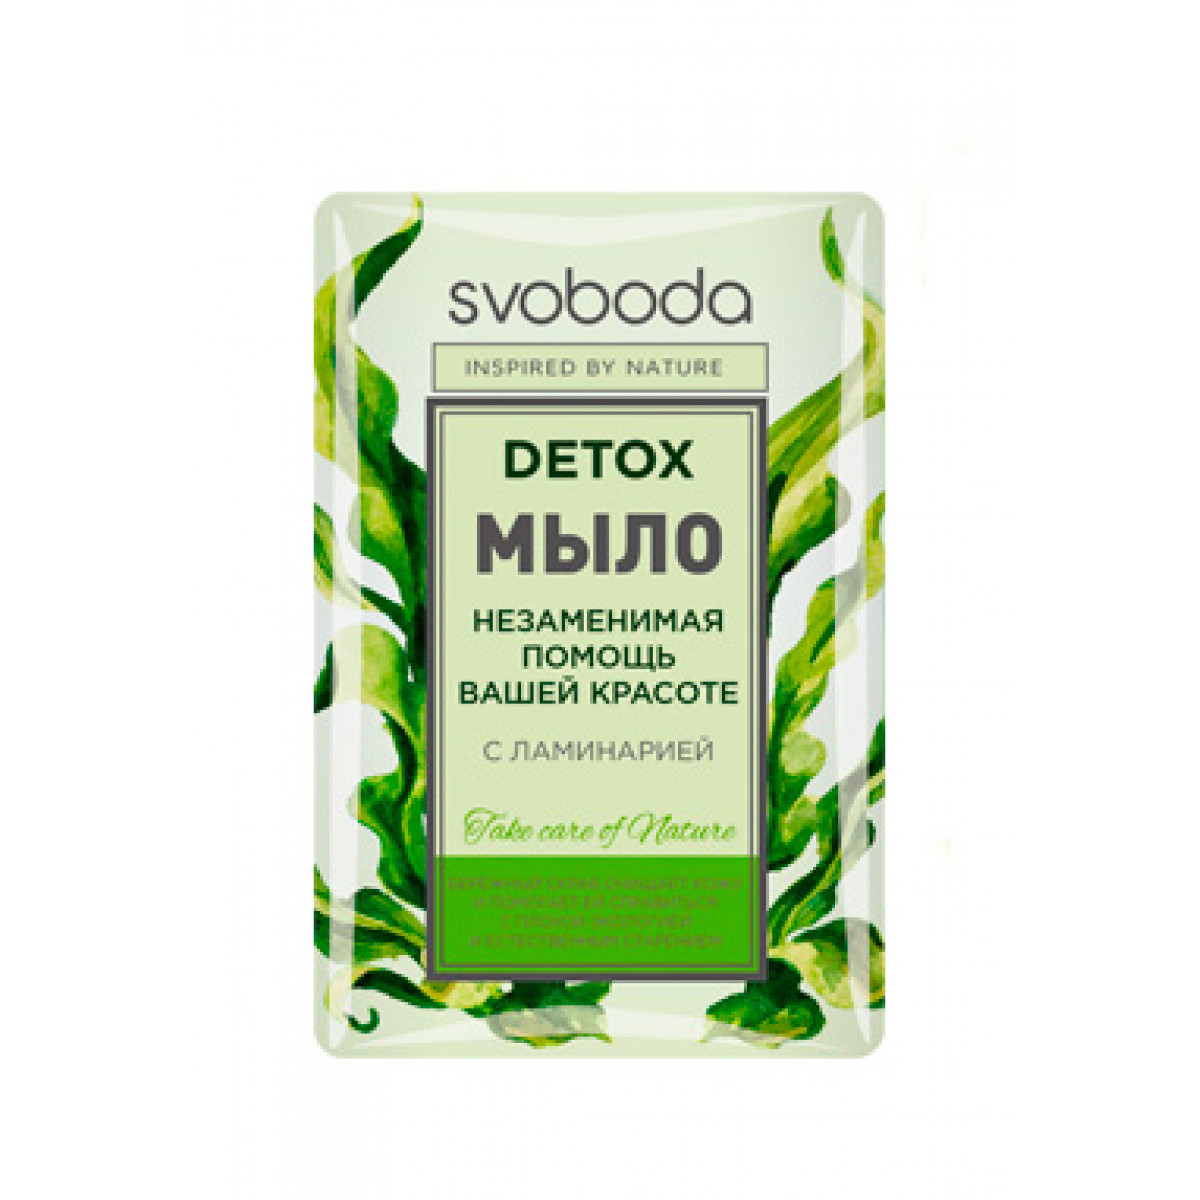 Toilet Soap SVOBODA Detox With Kelp